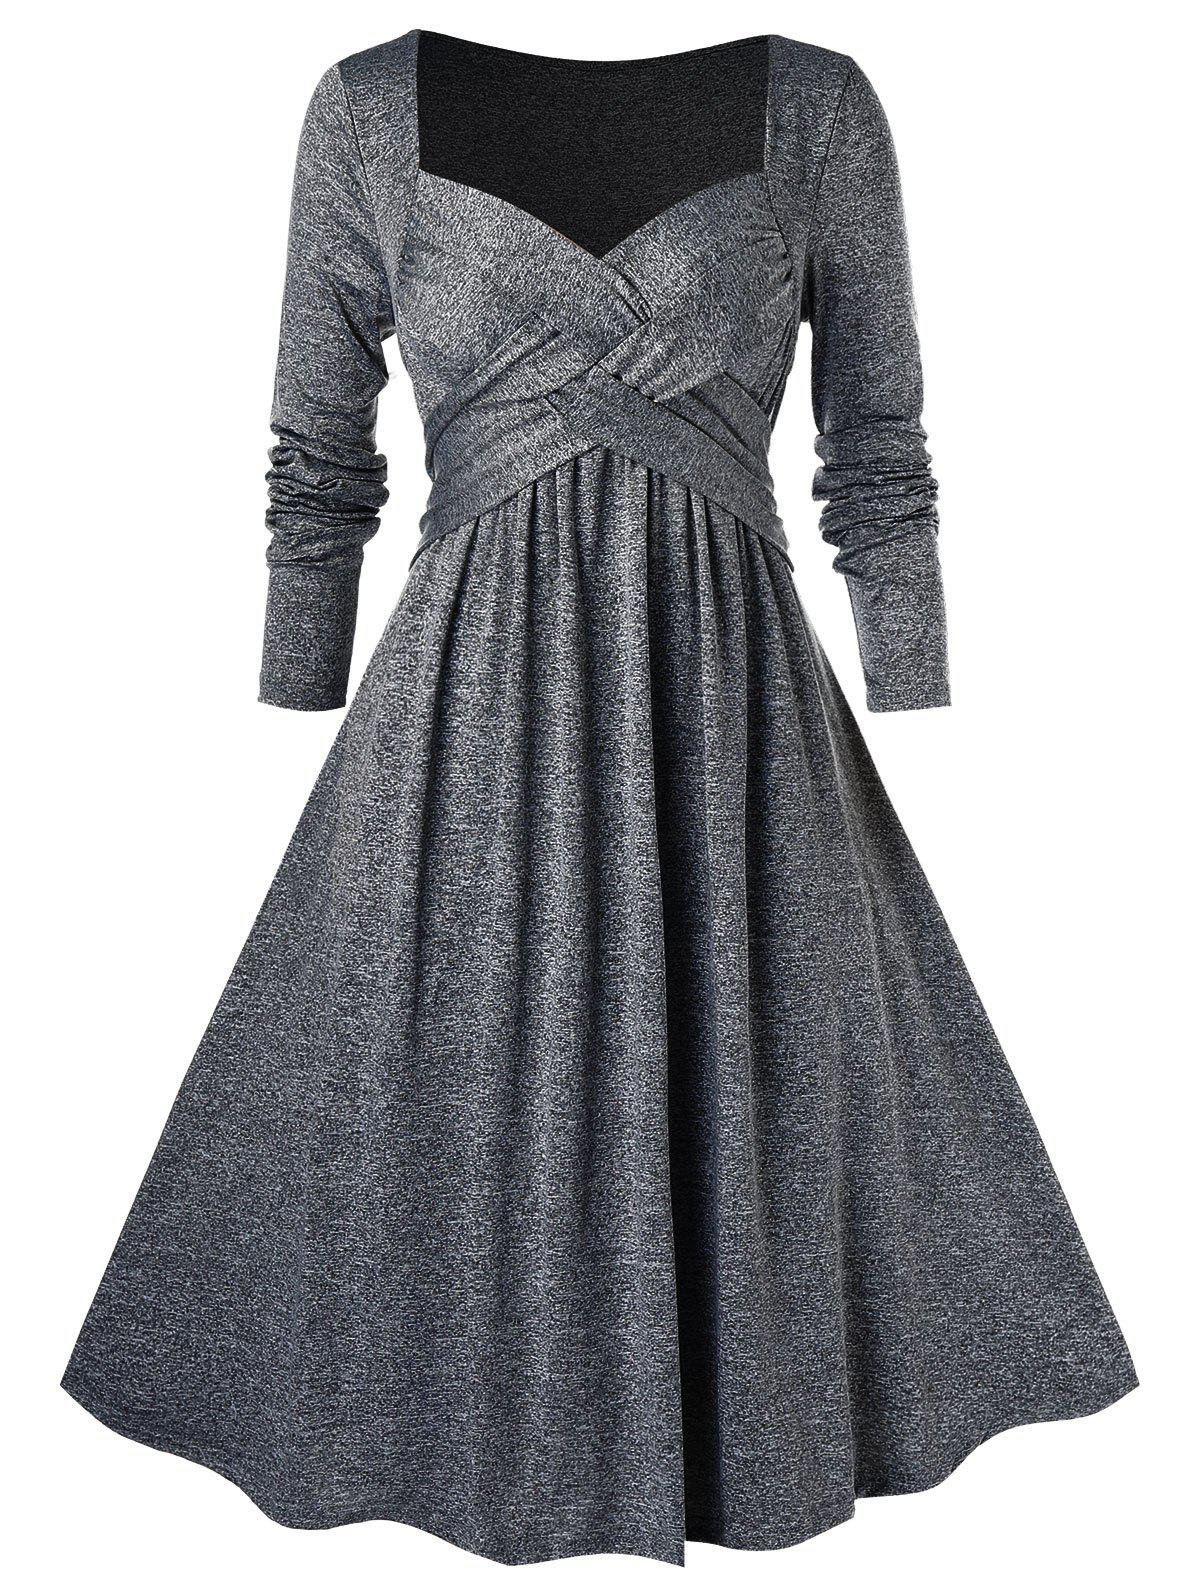 Plus Size Crossover Midi Flare Dress - GRAY CLOUD 5X